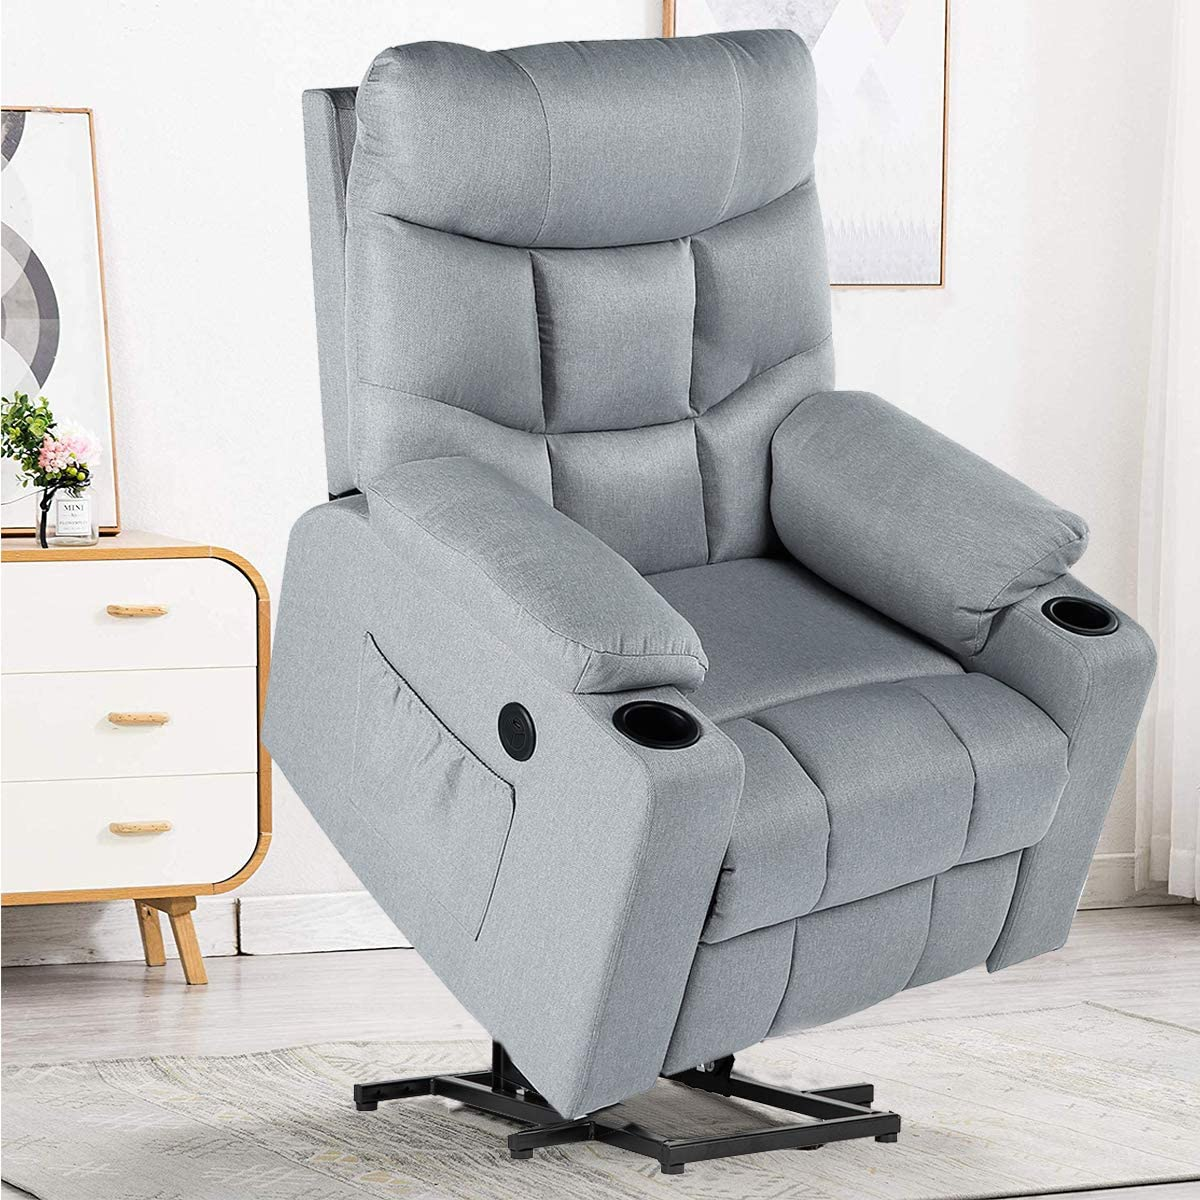 YODOLLA Electric Powr Recliner Chair, Grey Recliner Sofa with Massage Heat Function, Reclining Chair with Side Pockets and Cup Holder, USB